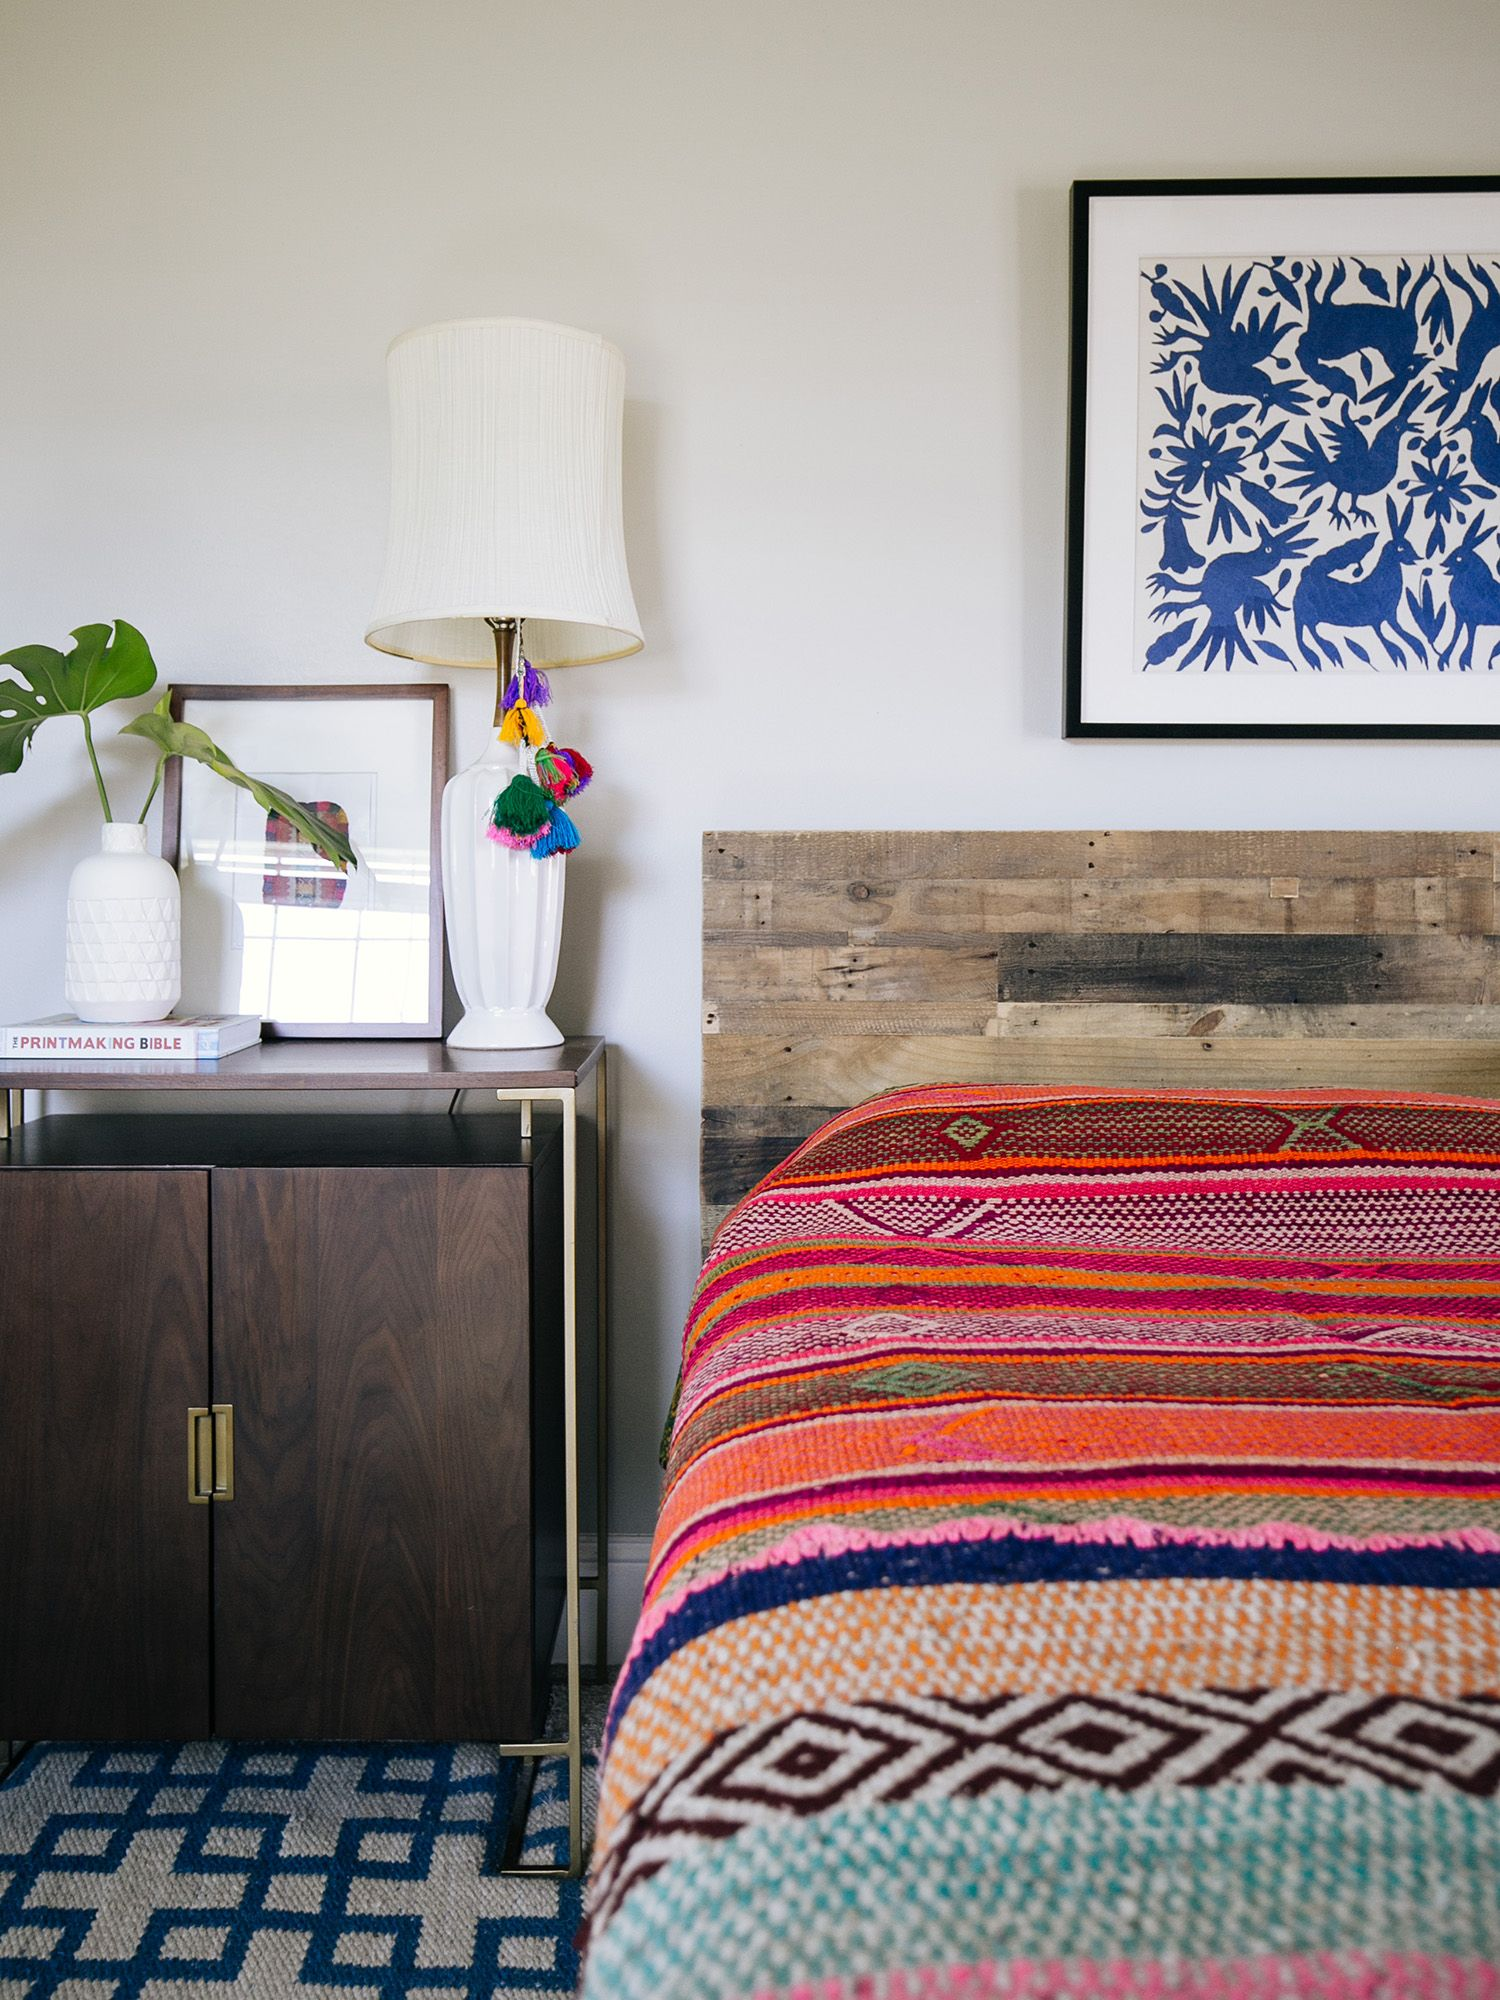 Decorating With Peruvian Textiles In